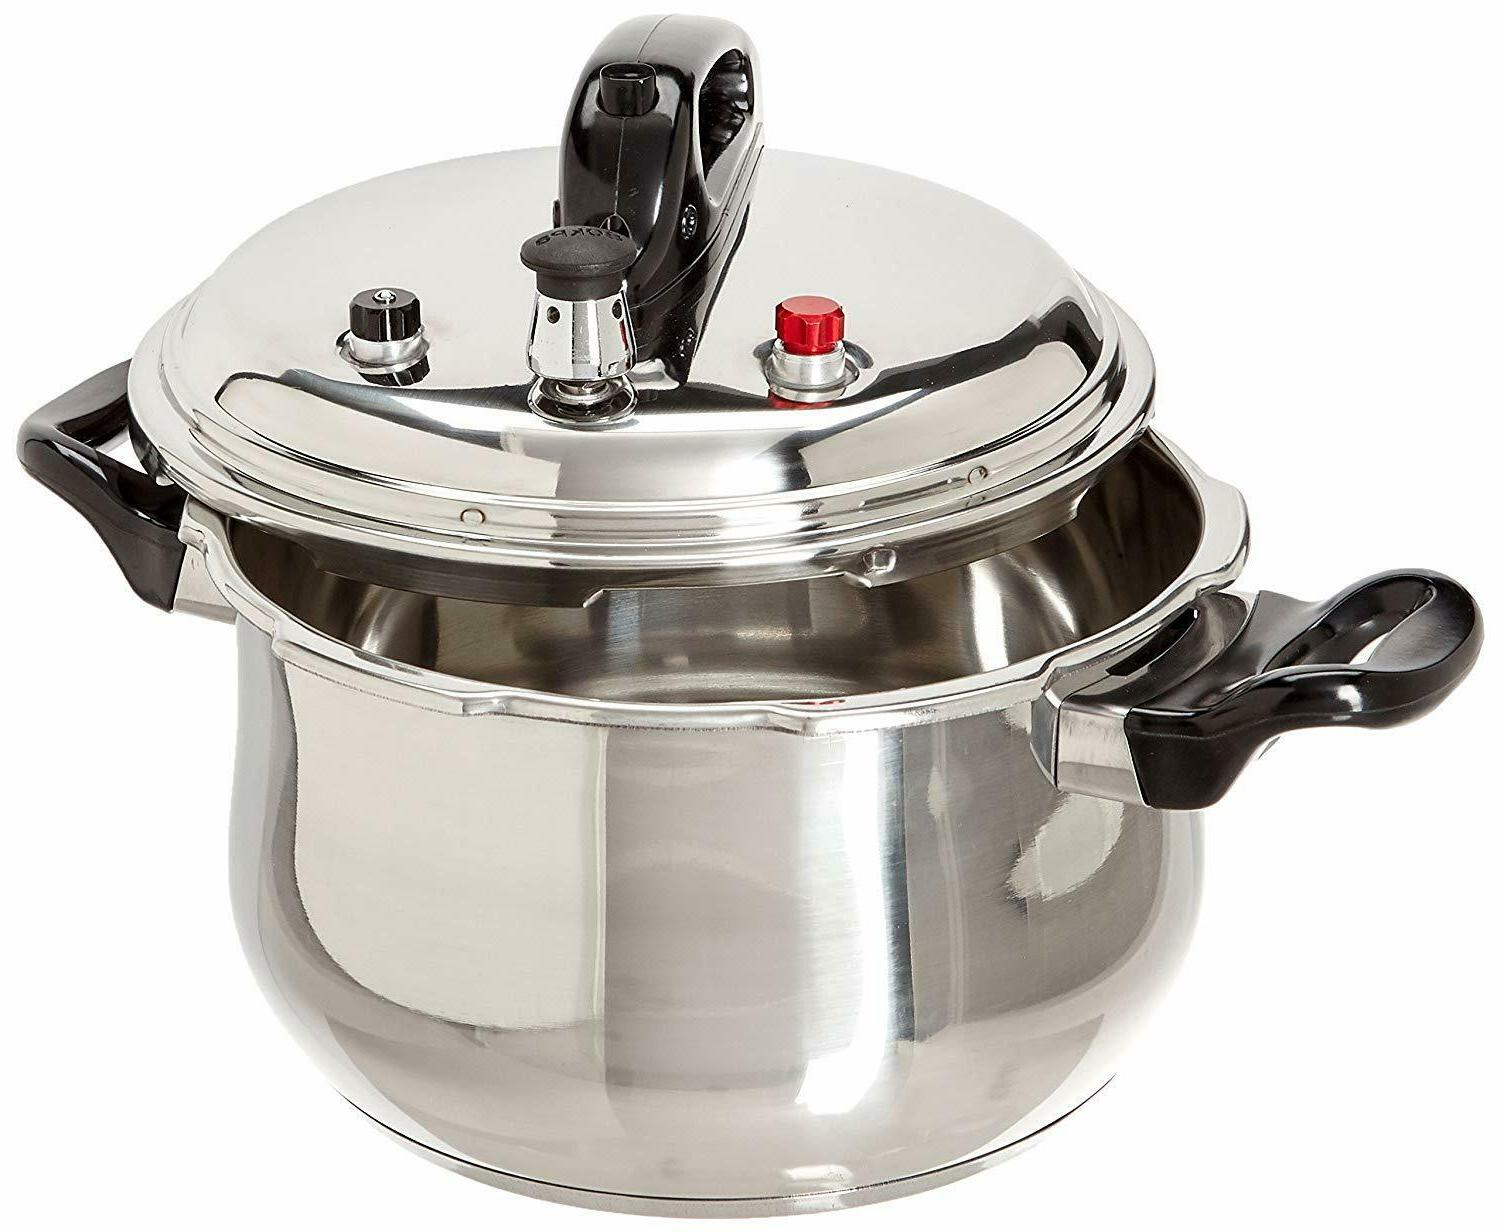 Uniware Pressure Cooker With 6 Safety Features,5.3/7.4/9.5 Q